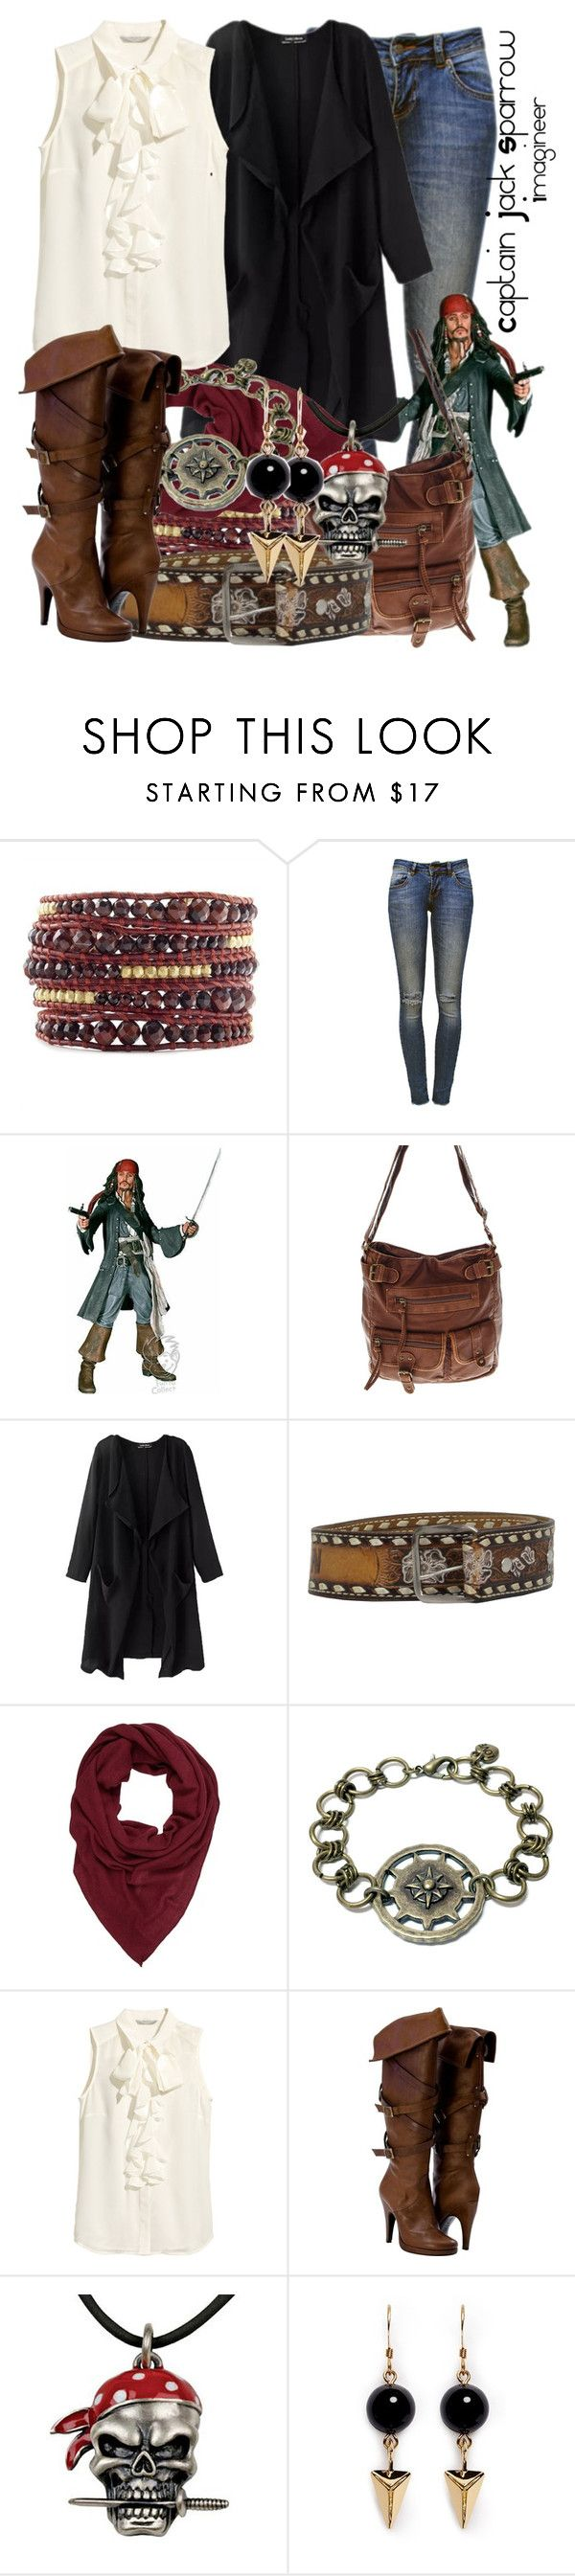 """Captain Jack Sparrow (Pirates of the Caribbean)"" by claucrasoda ❤ liked on Polyvore featuring Chan Luu, Anine Bing, Repeat, H&M and Joomi Lim"